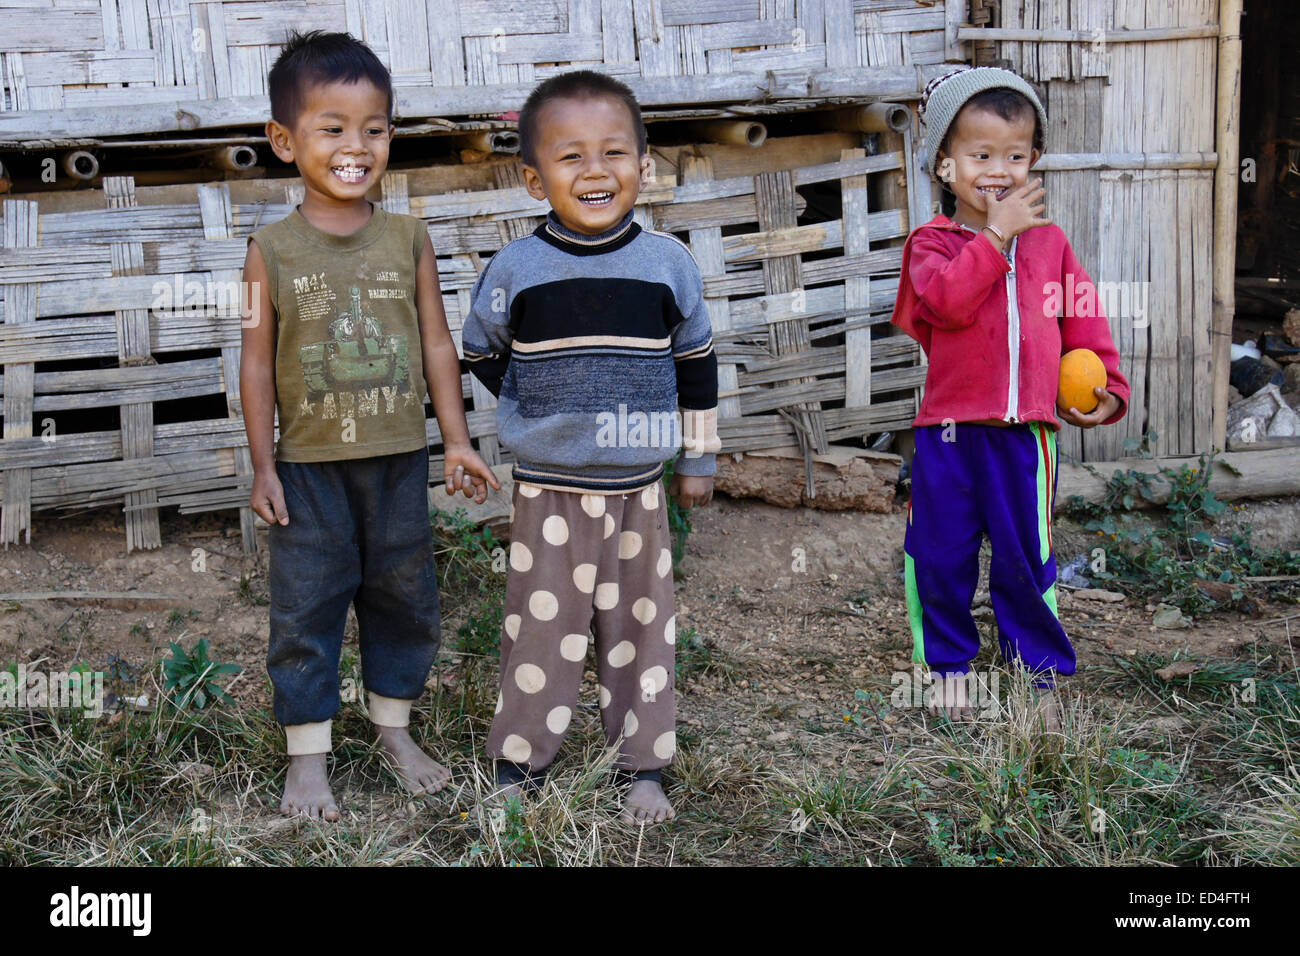 Children of Kmou ethnic group, Kiew Mak Nao village, Laos - Stock Image